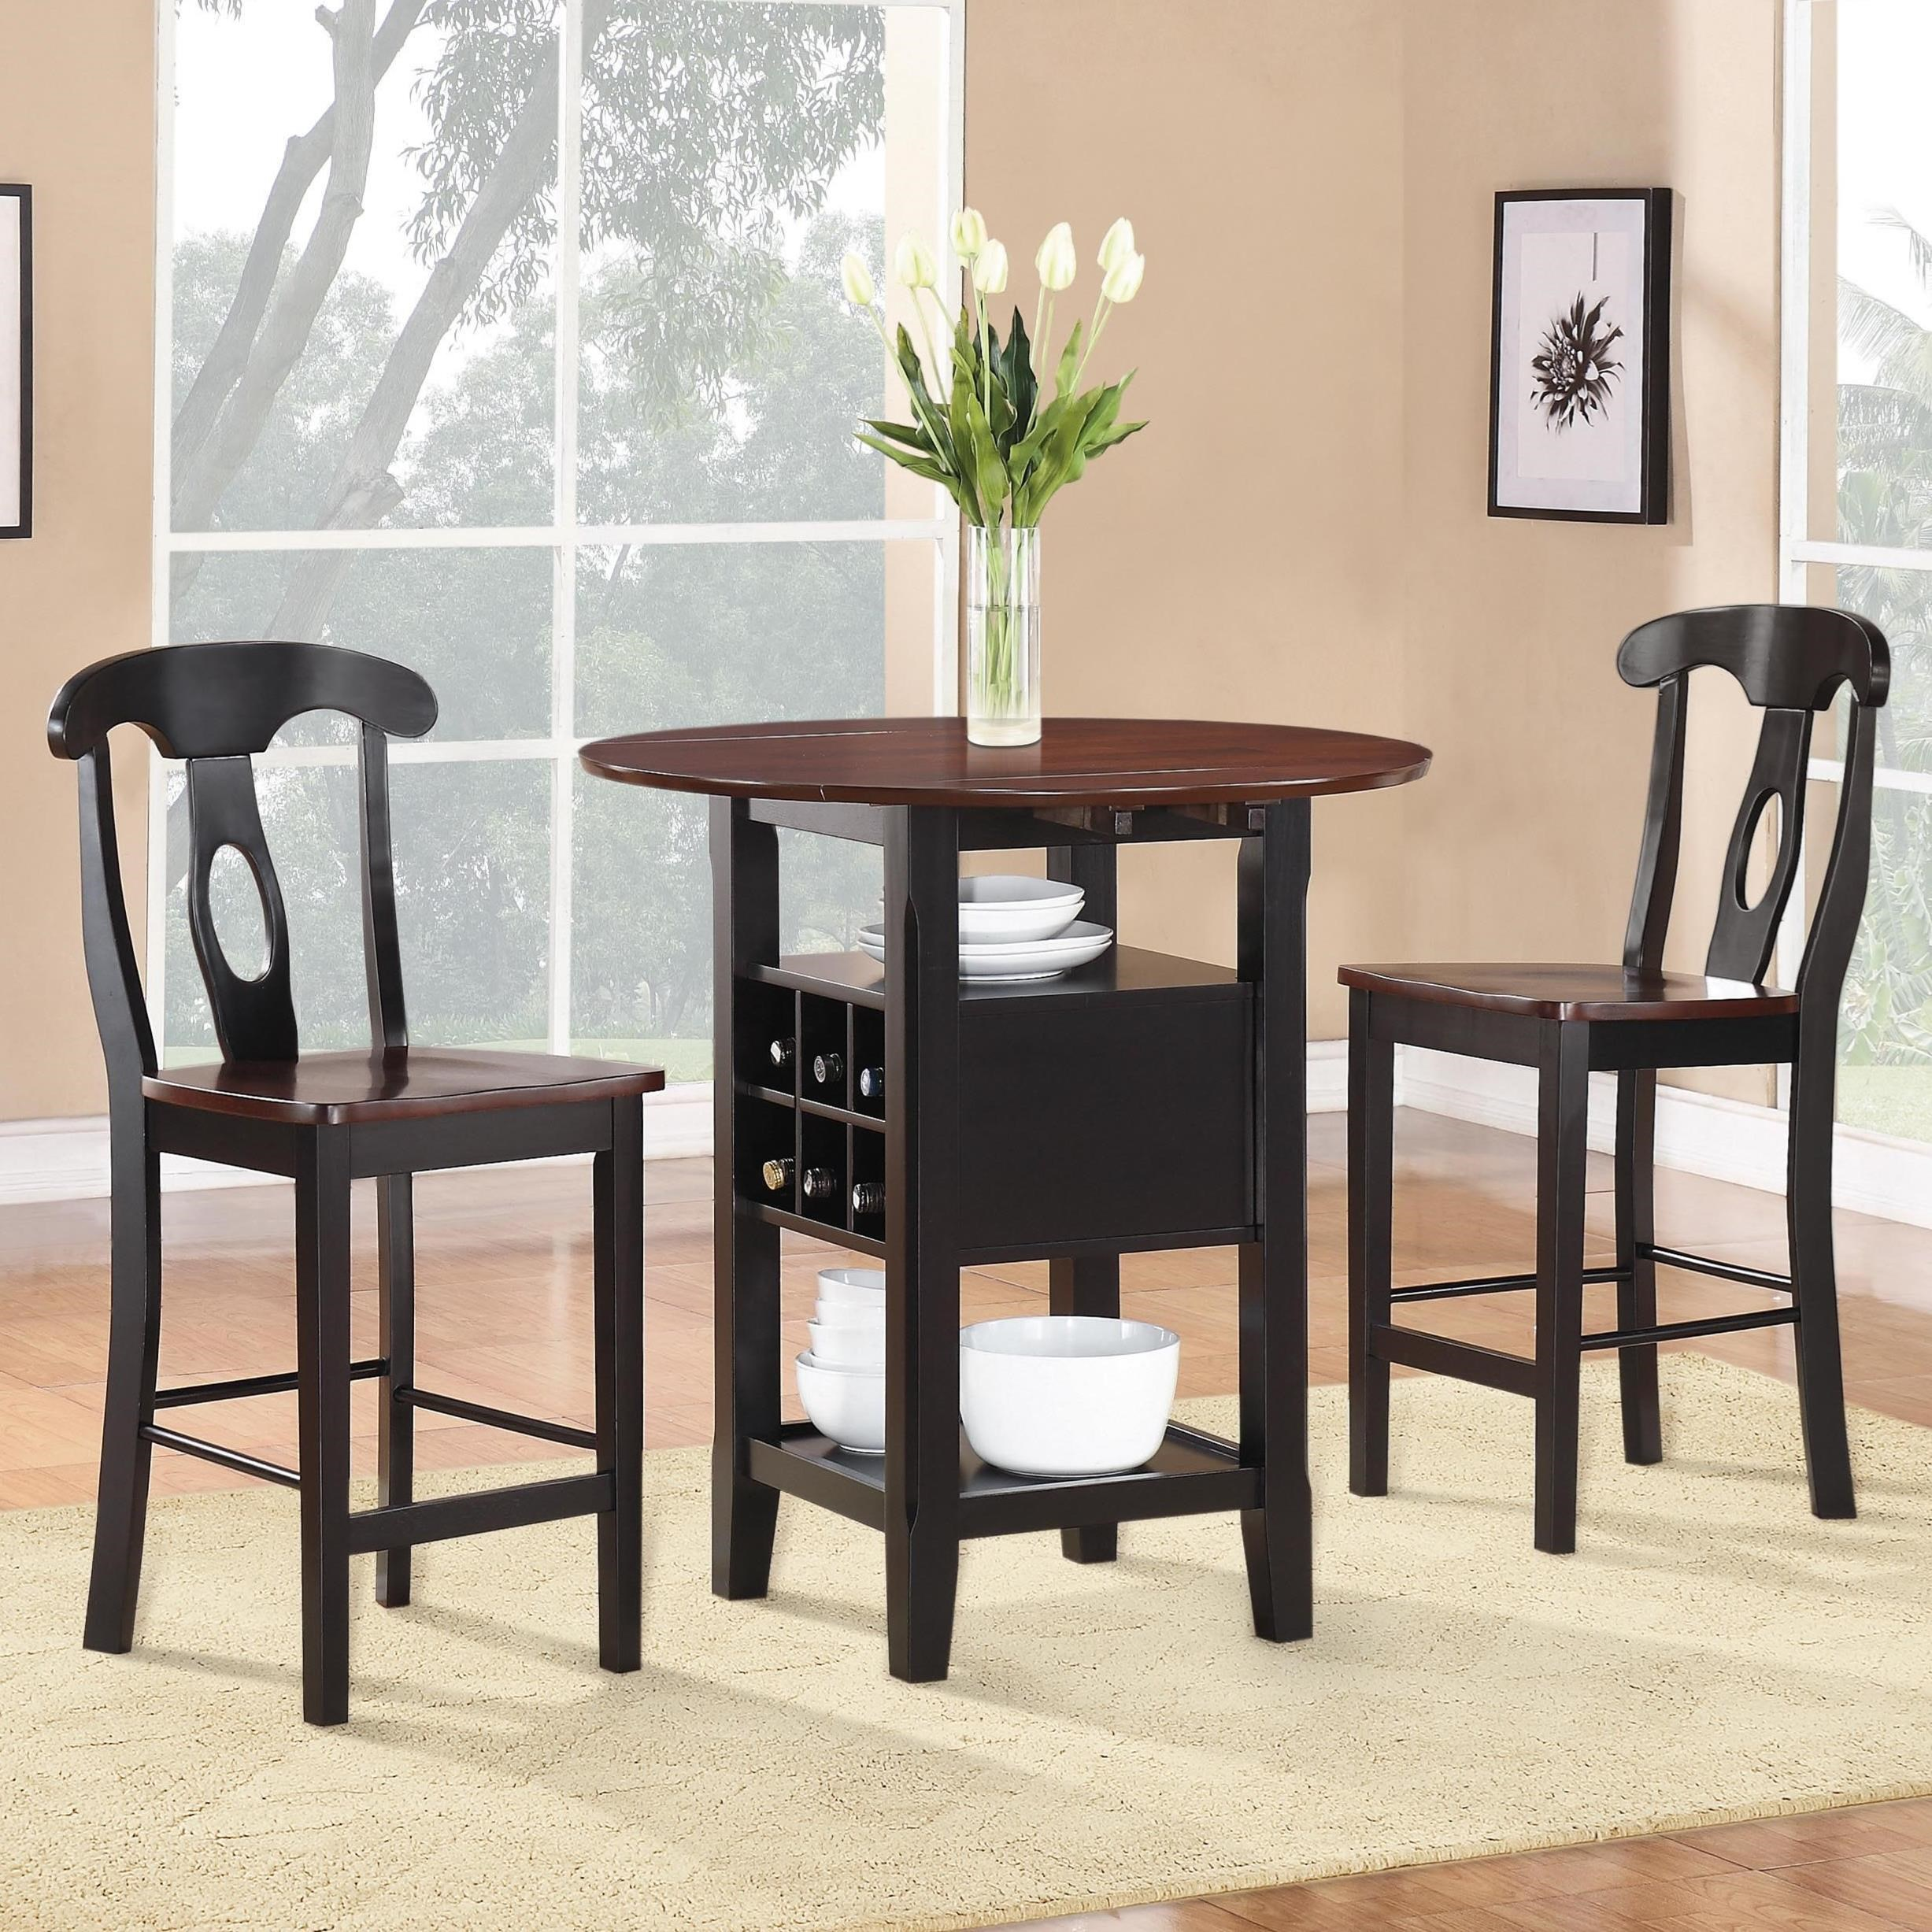 Atwood Pub Table and Chair Set by Homelegance at Darvin Furniture